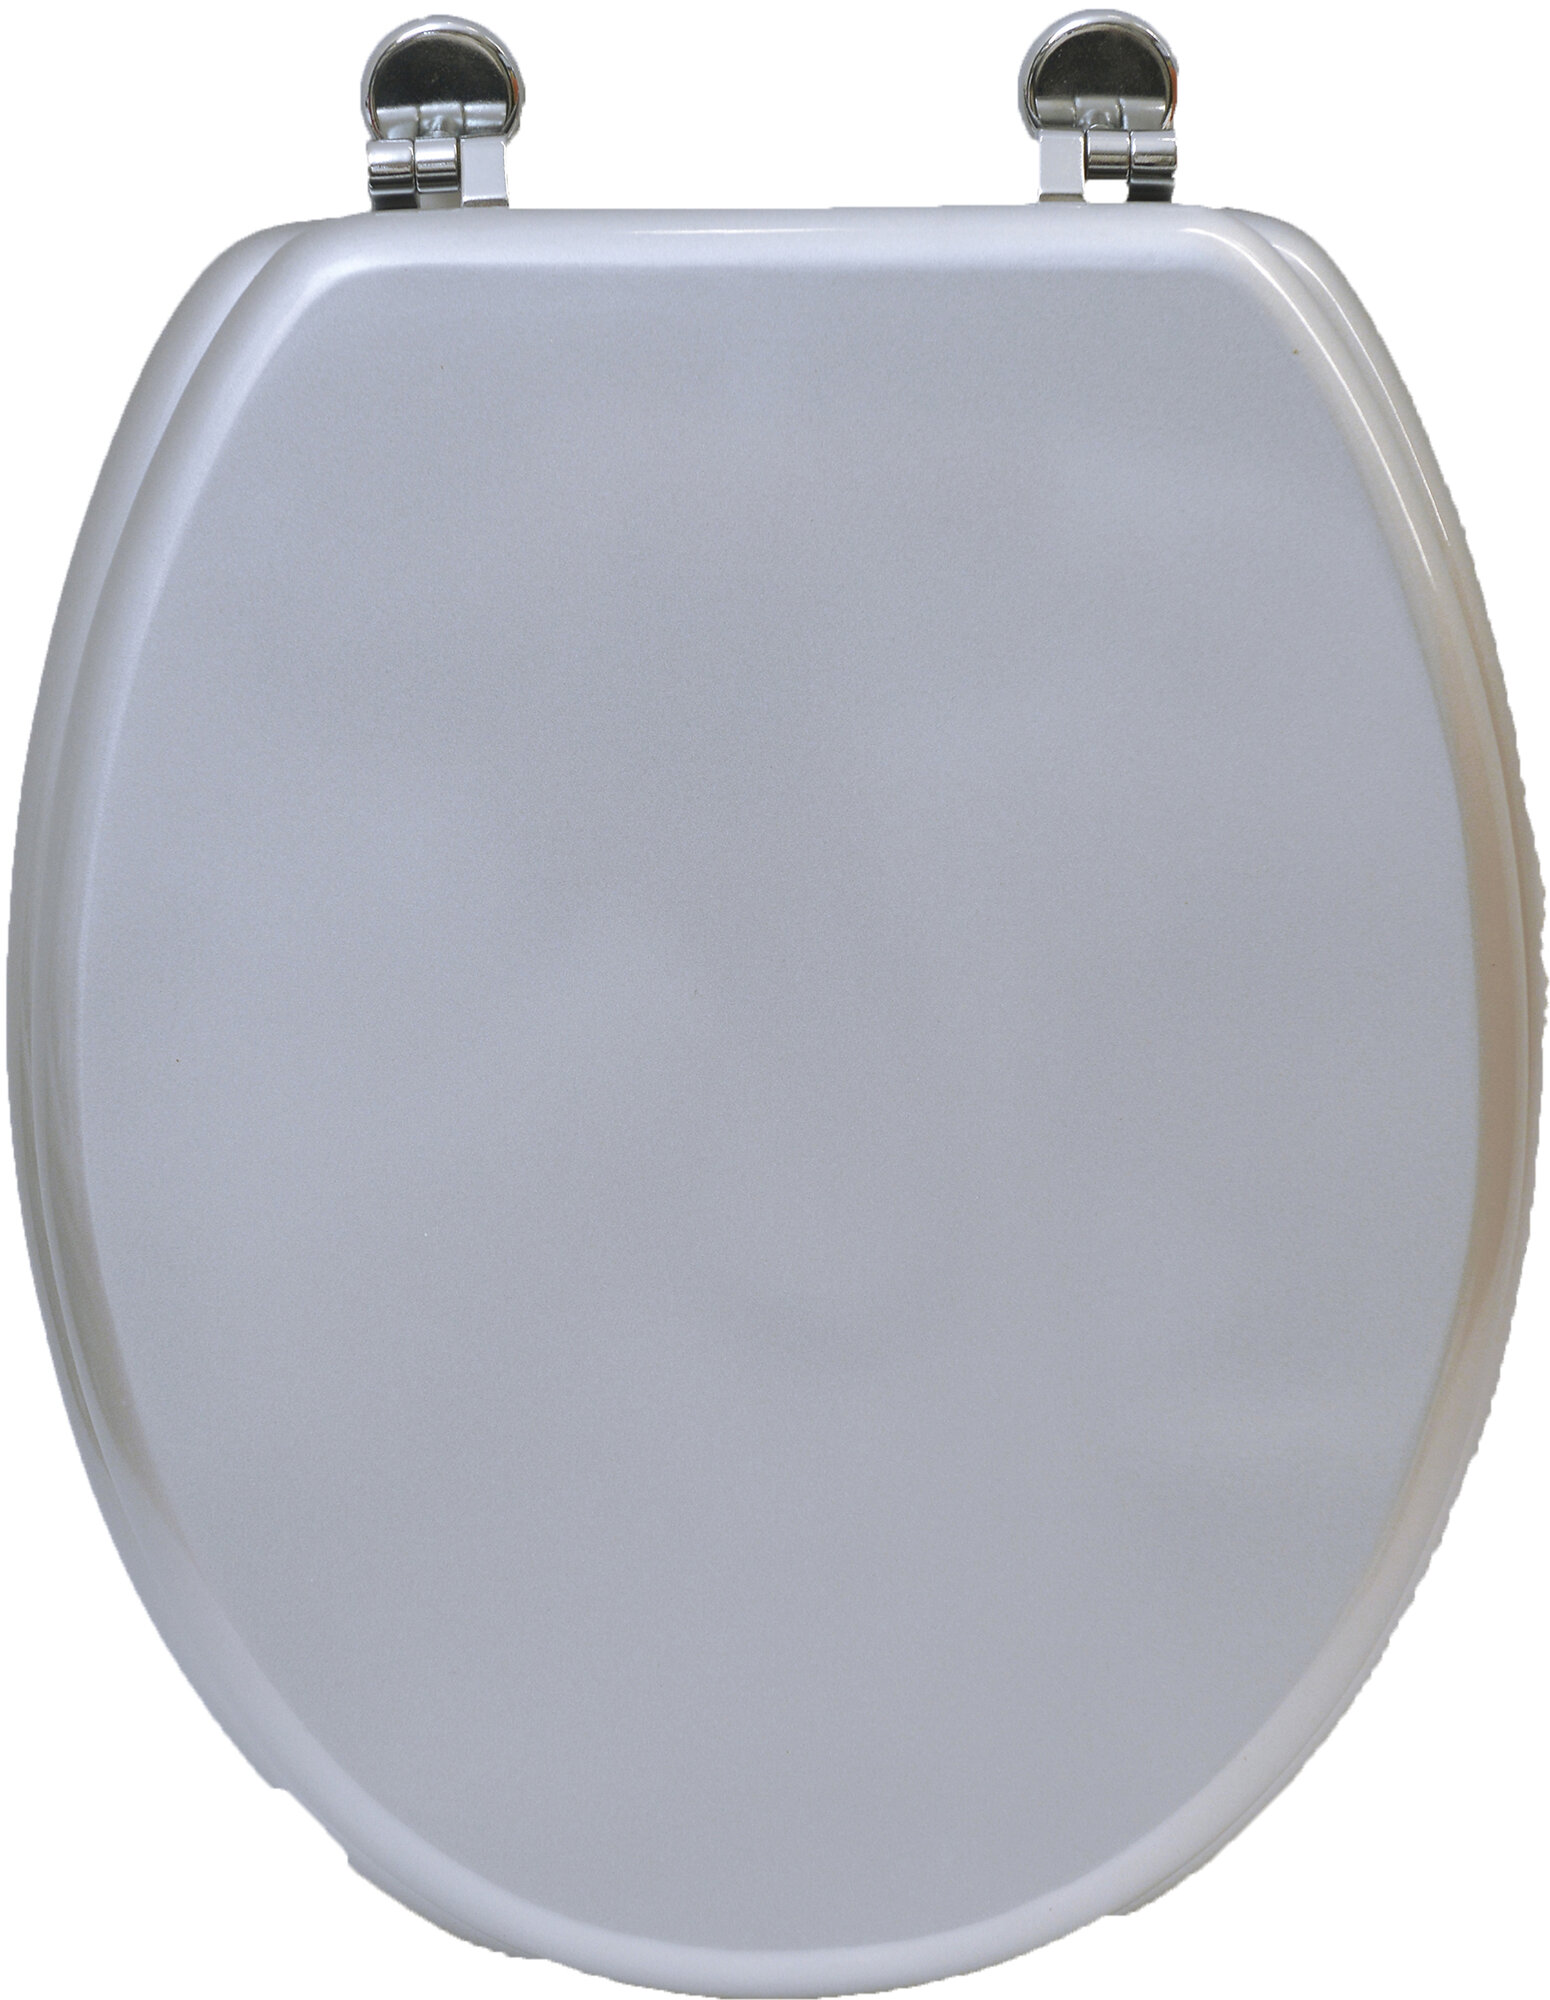 Evideco Elongated Toilet Seat EBay